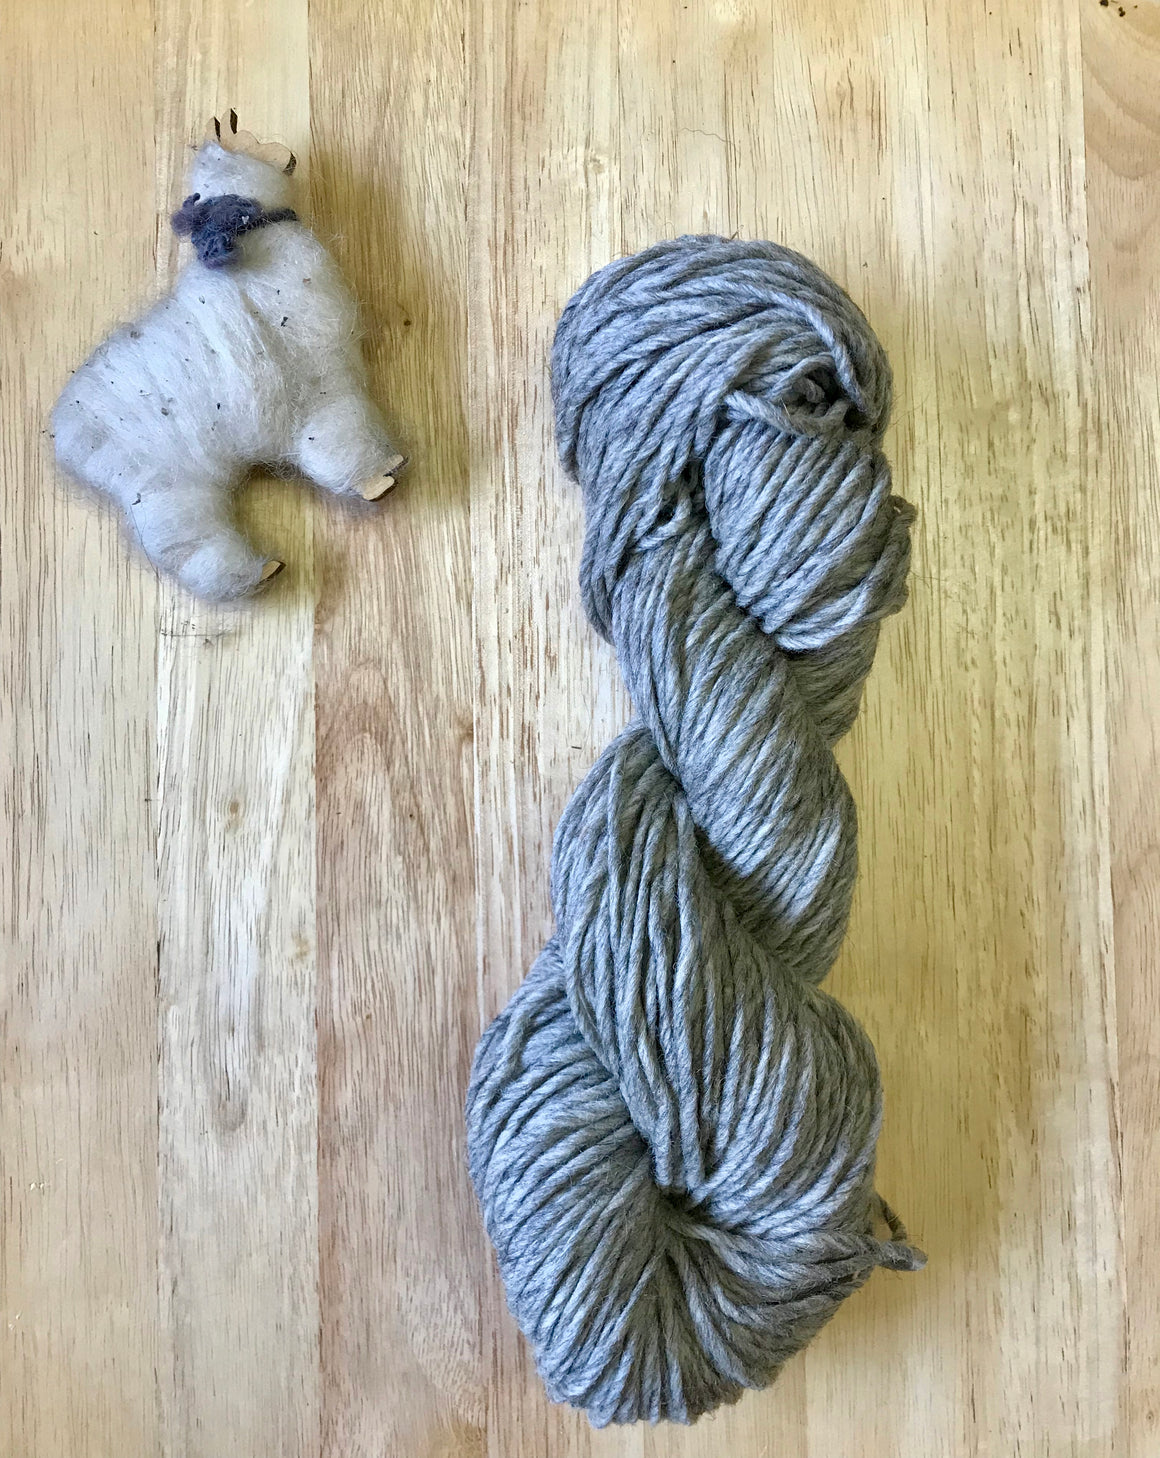 Yarn: 100% Wool Natural Gray